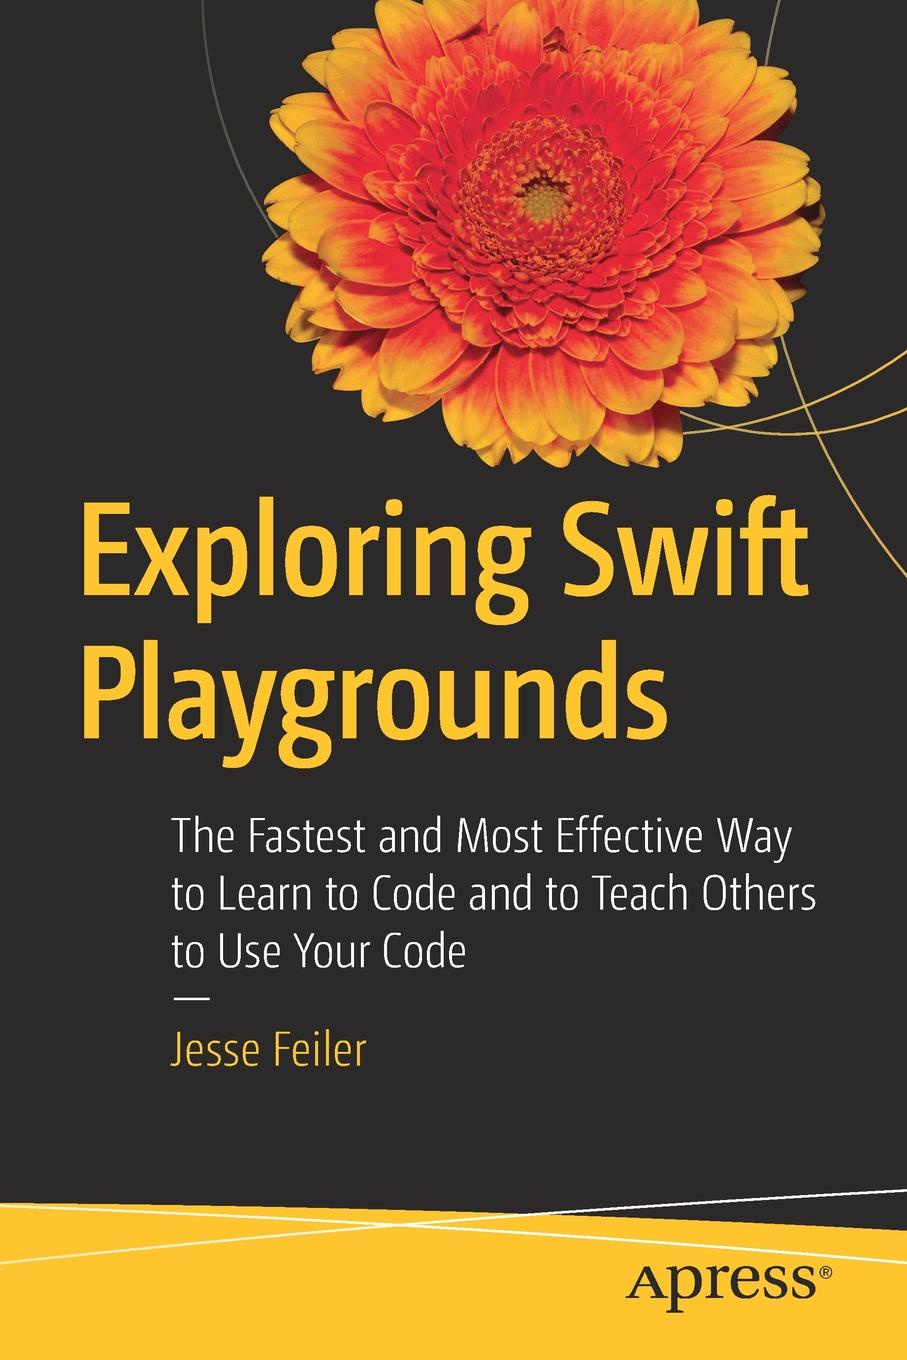 Jesse Feiler Exploring Swift Playgrounds. The Fastest and Most Effective Way to Learn to Code and to Teach Others to Use Your Code 12n50m2 to 220f